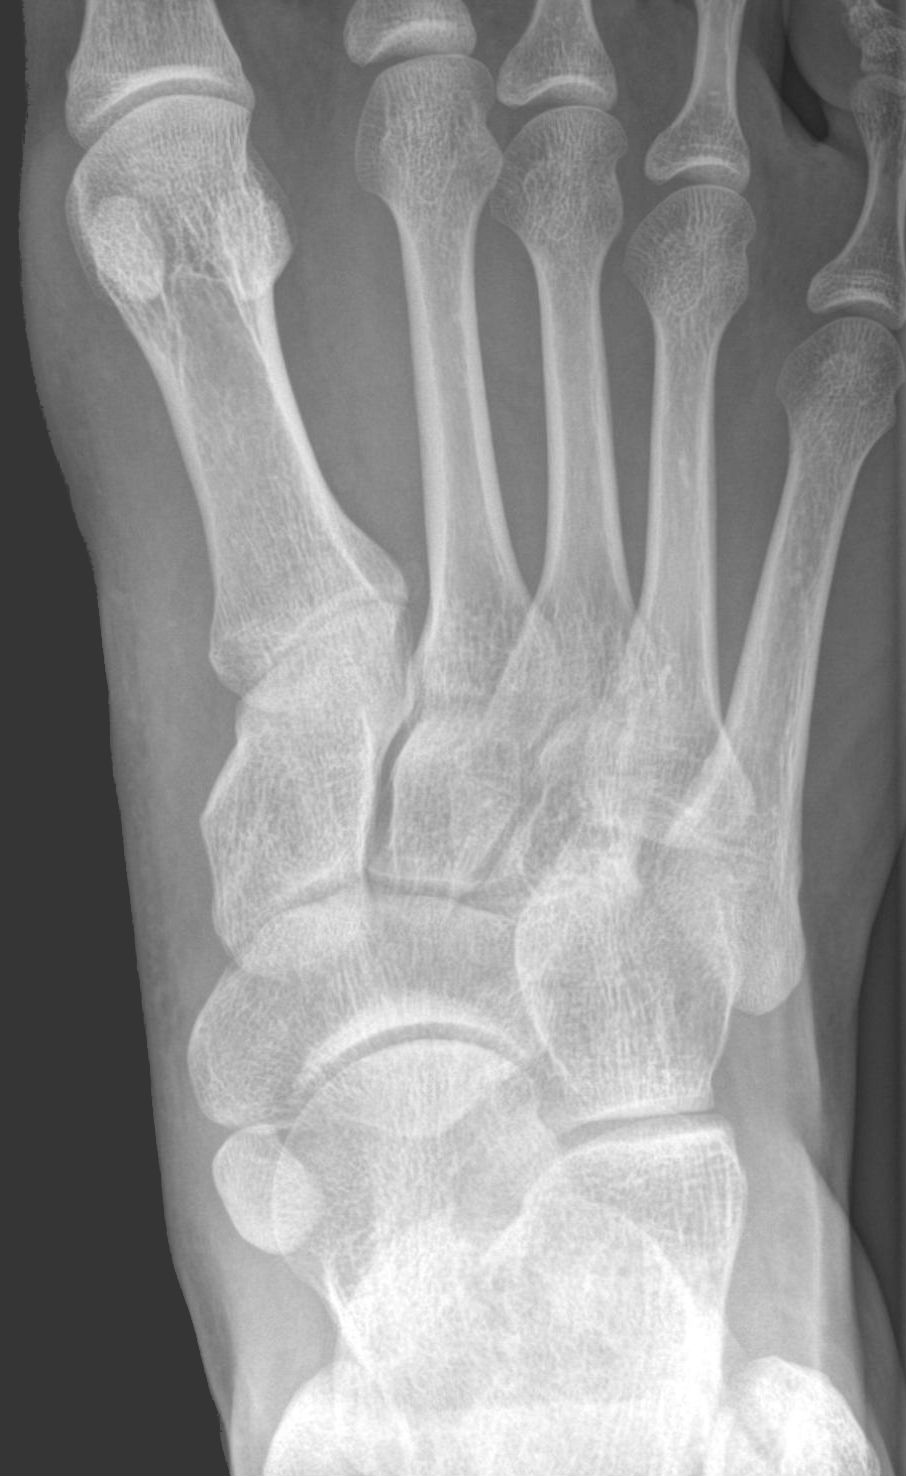 Accessory navicular bone - Wikipedia